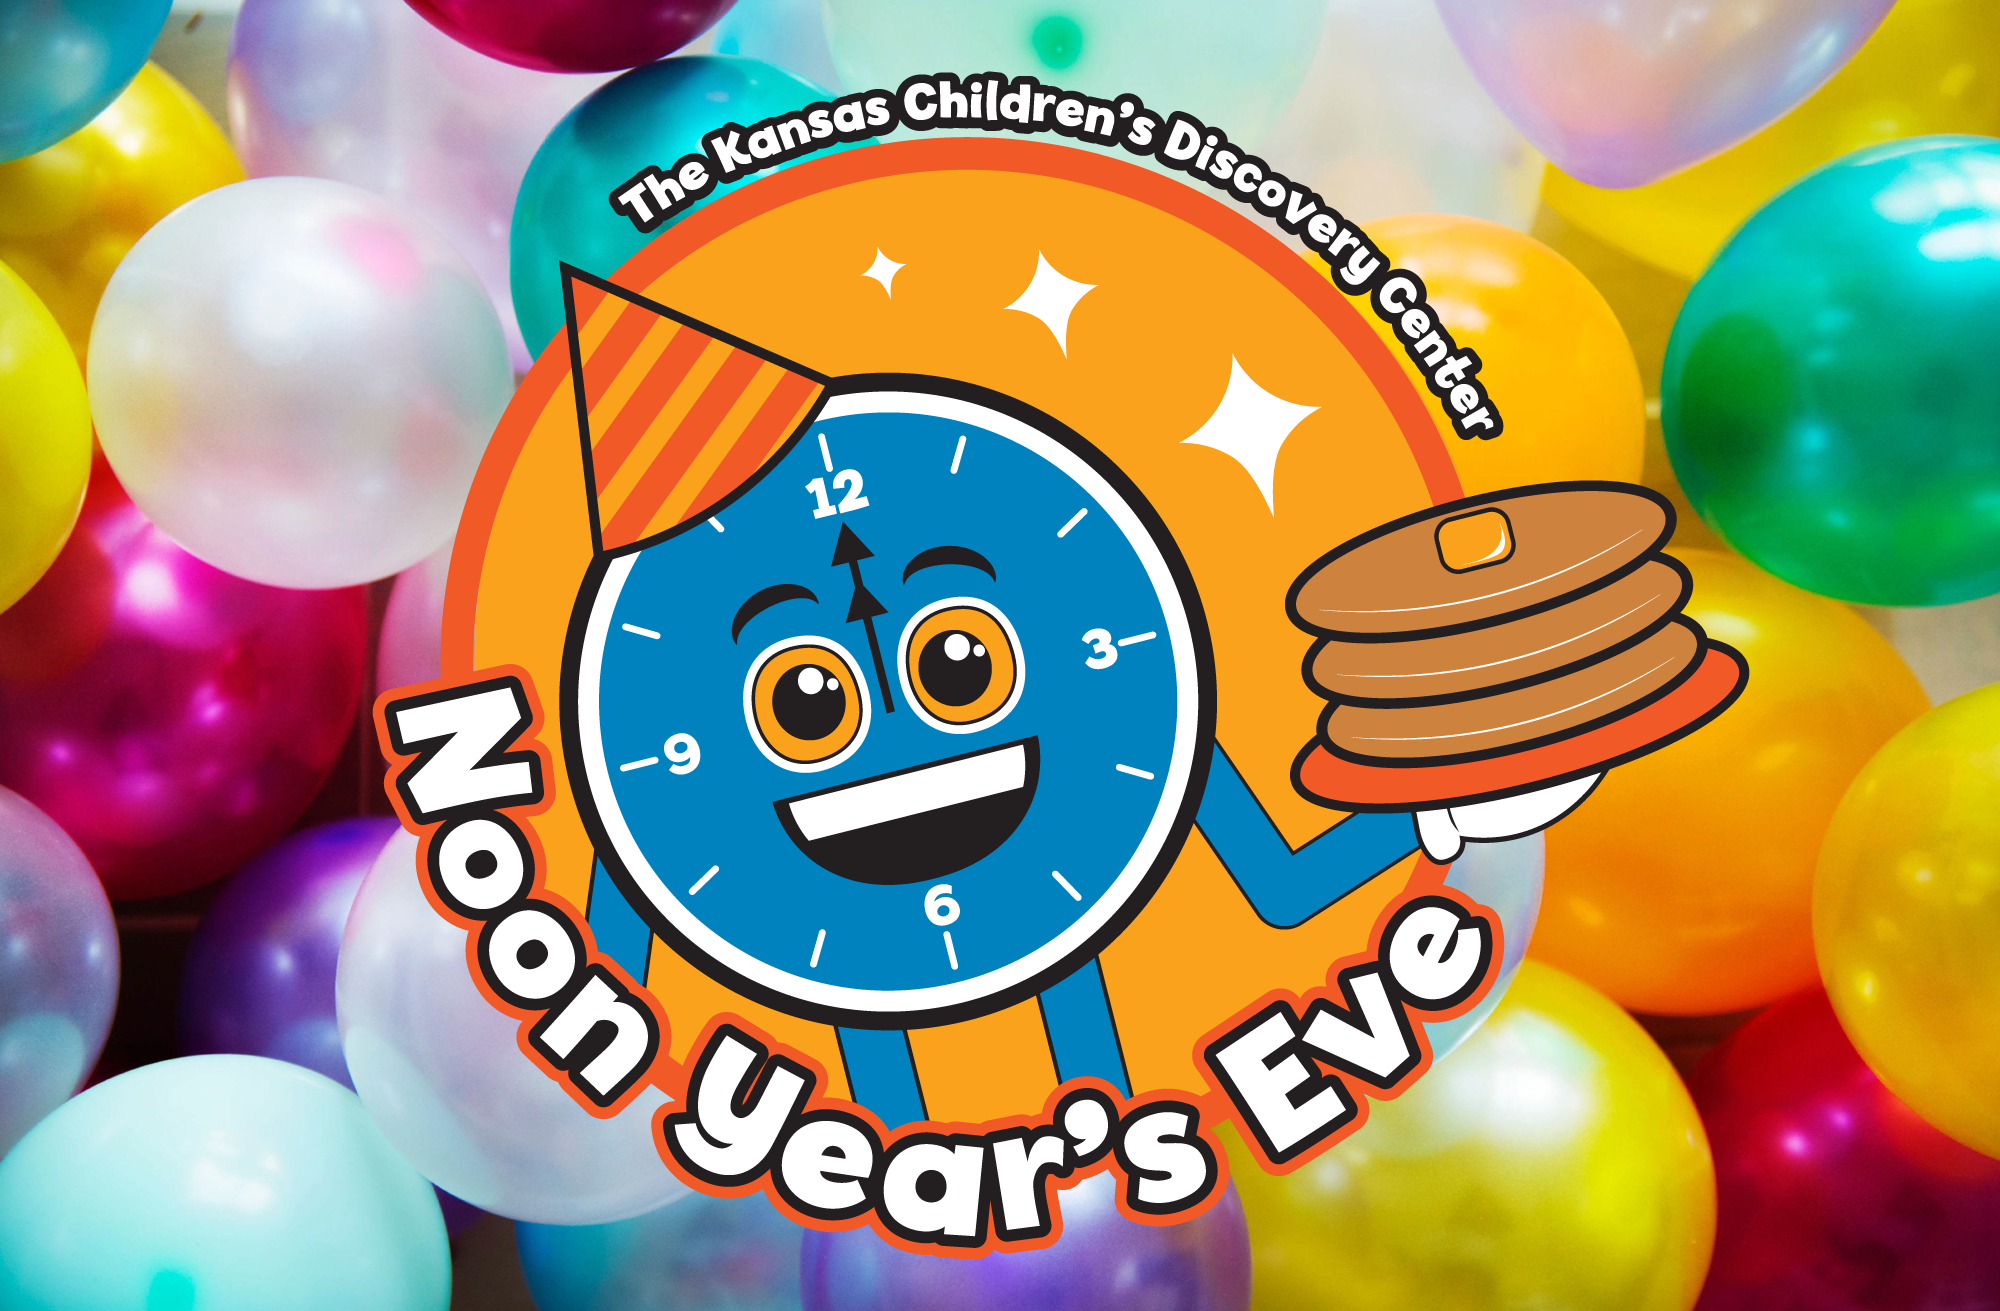 KCDC's Noon Years Eve logo featuring a clock with a party hat holding a stack of pancakes on a background of multicolored balloons